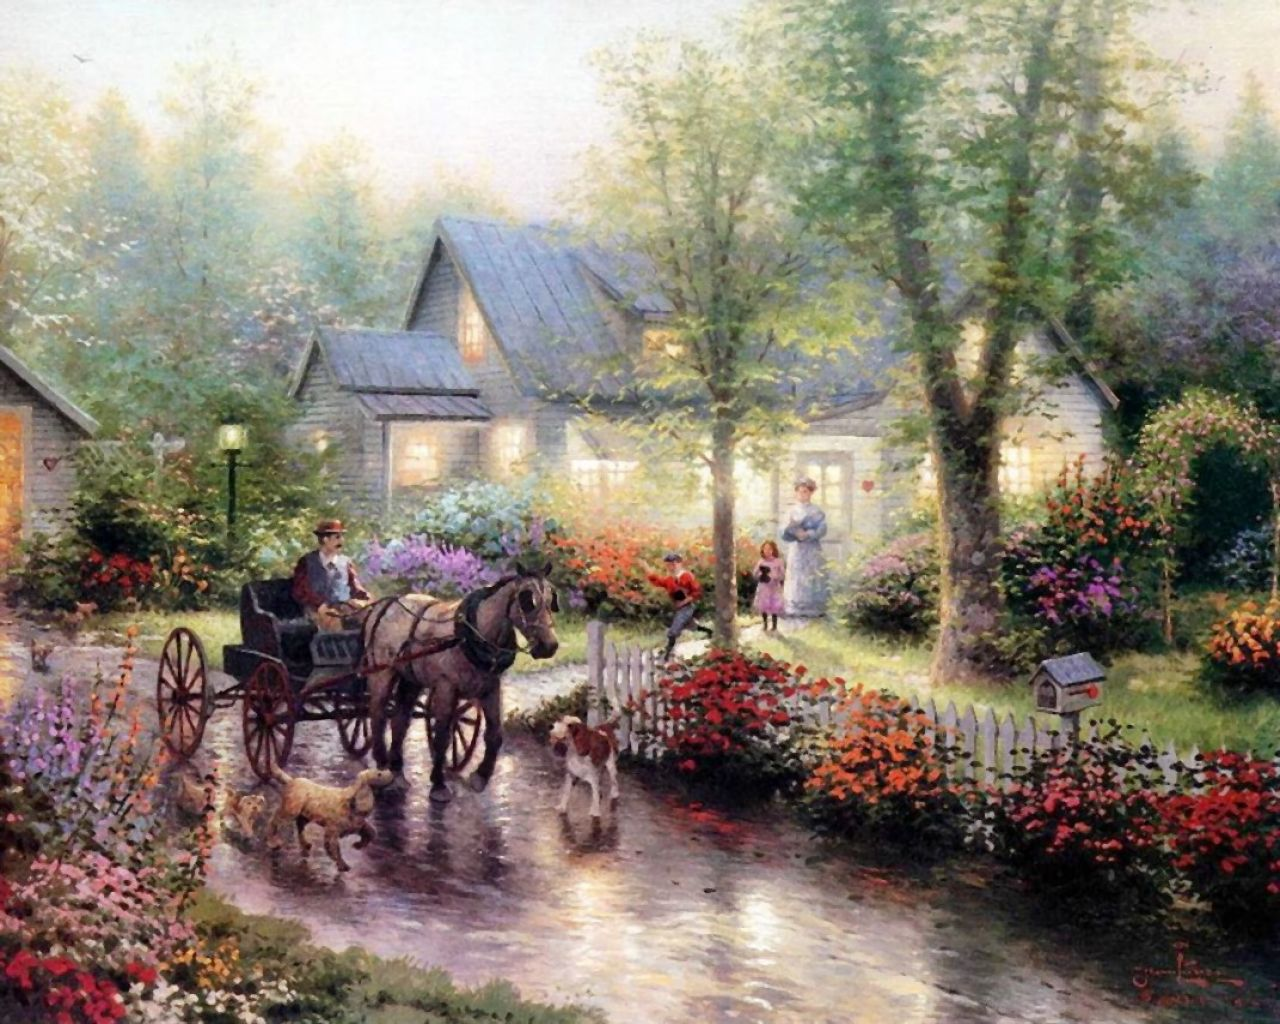 Thomas Kinkade - muzhichek on a cart, dogs, Delhi, and his wife, country house